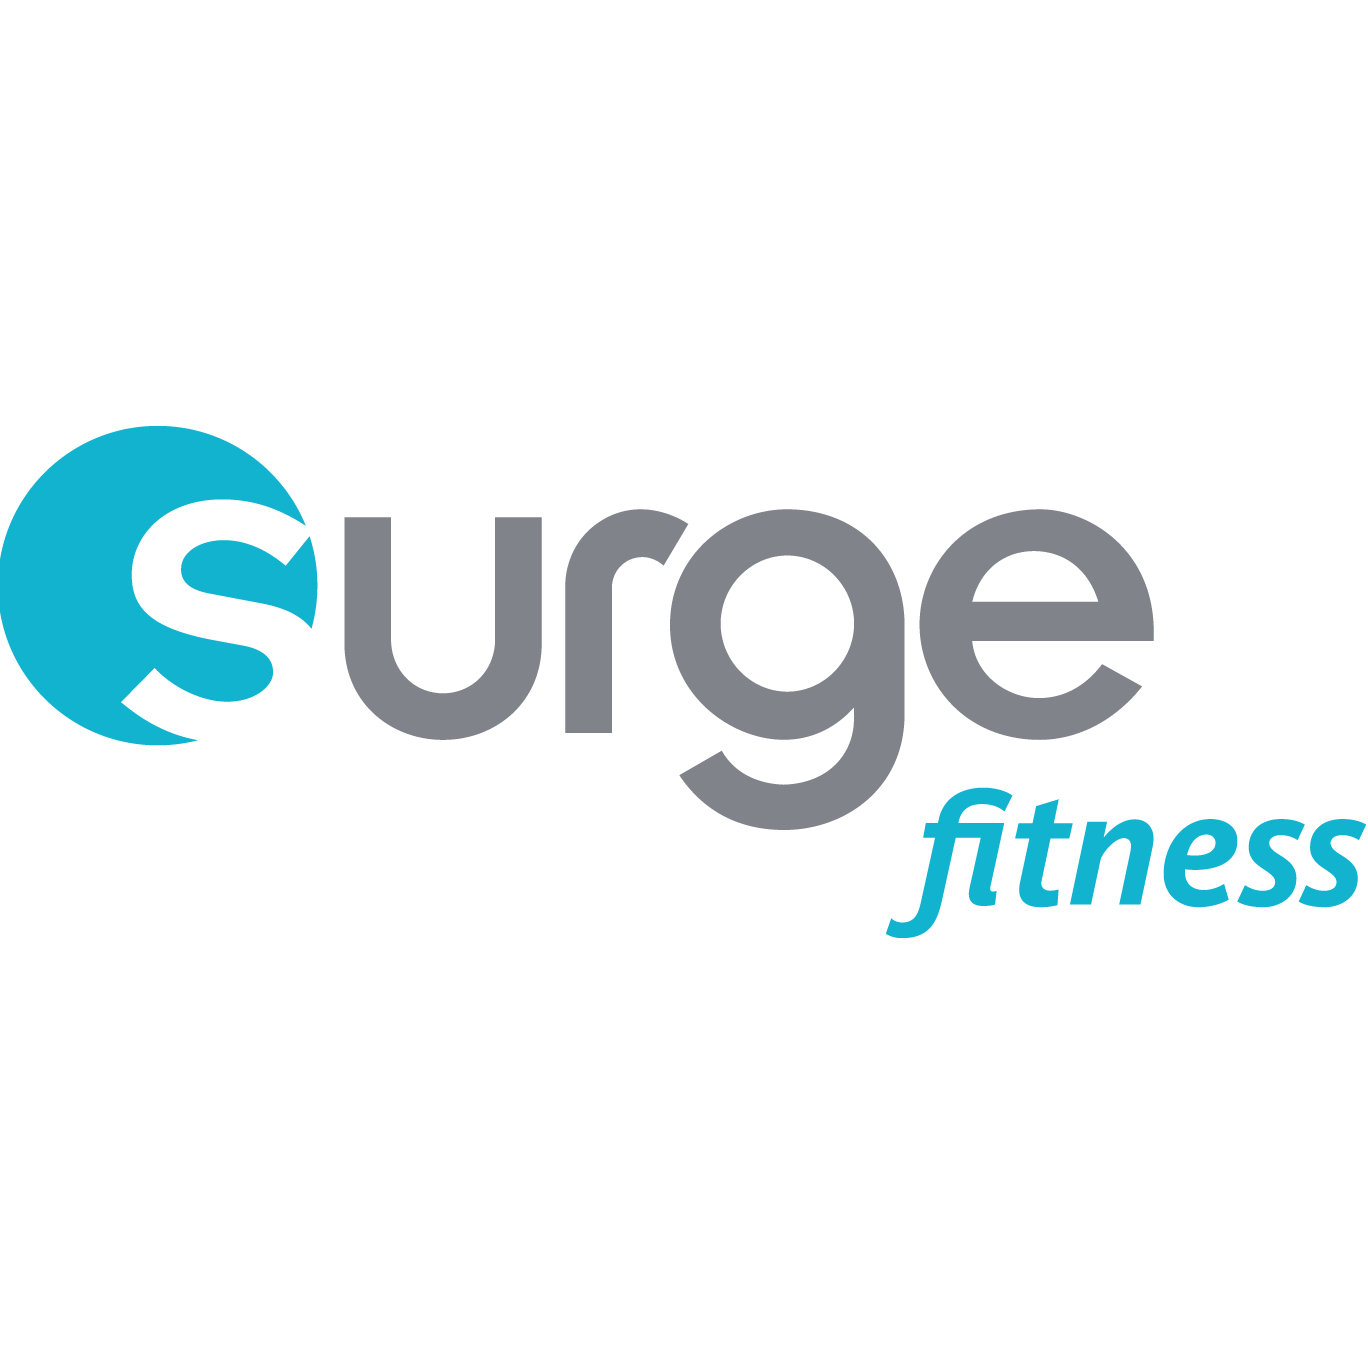 surge-fitness-logo.png